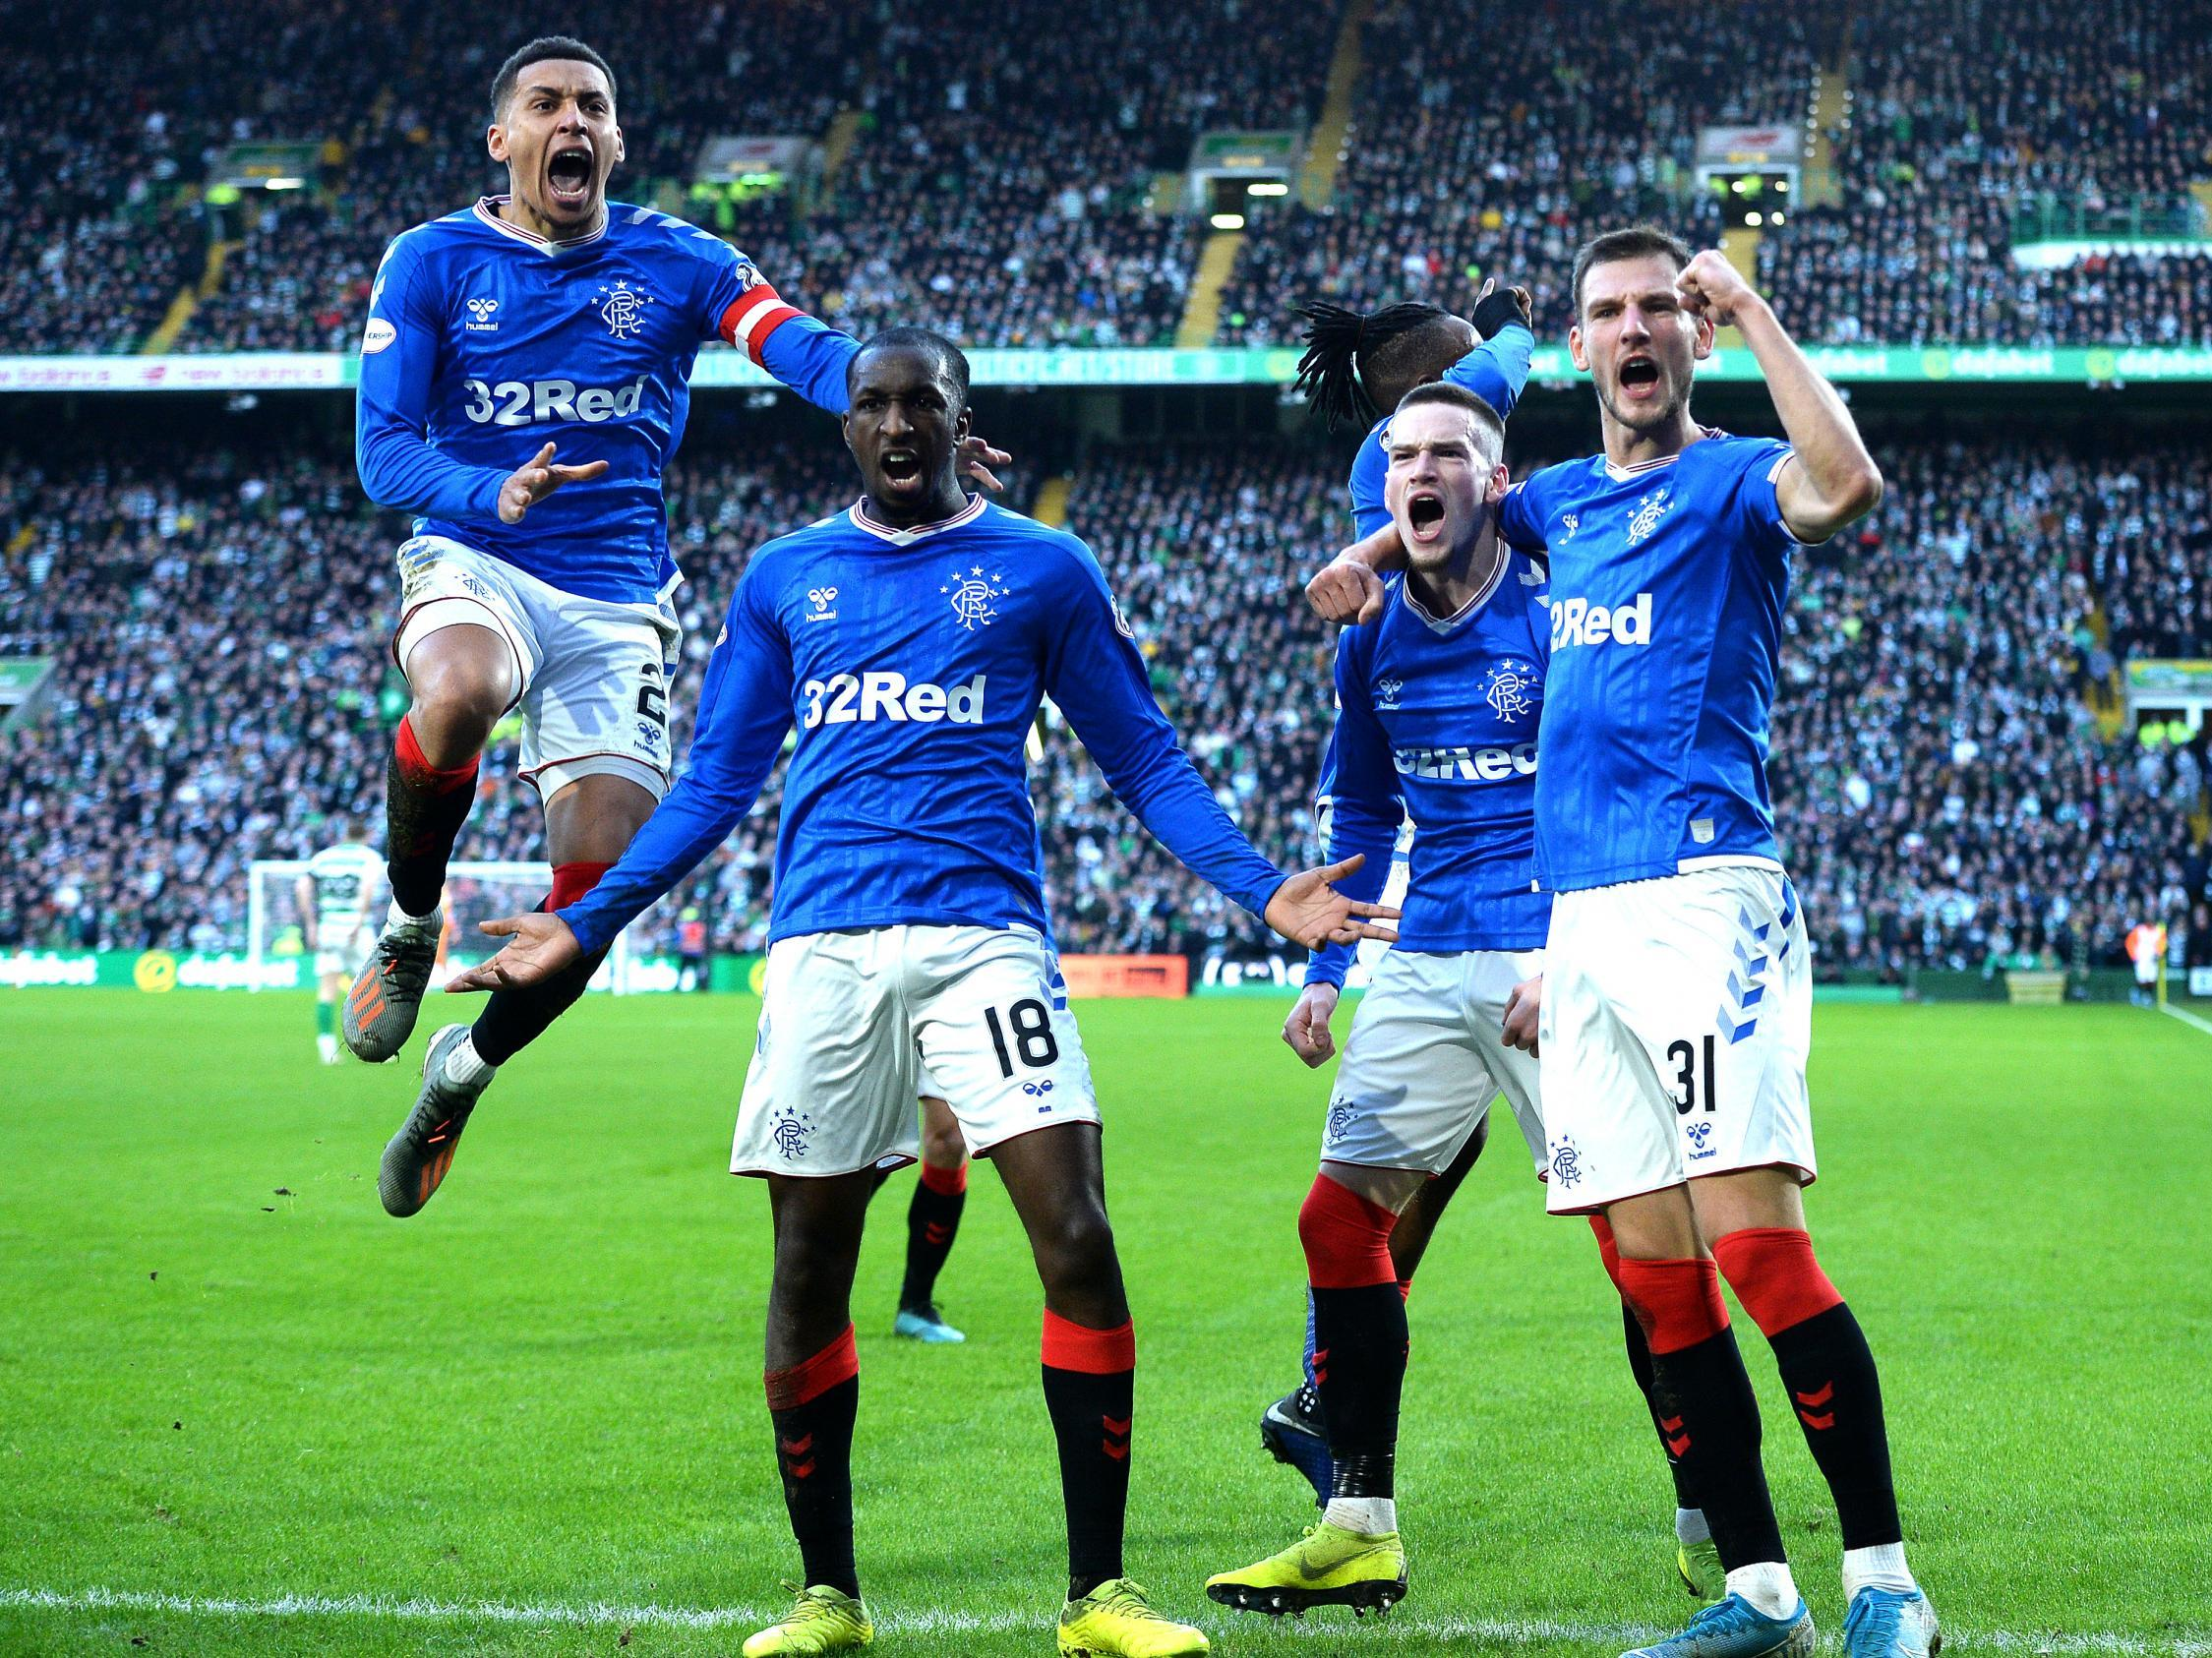 Steven Gerrard's Rangers win at Celtic Park to close the gap in thrilling title race | The Independent | The Independent